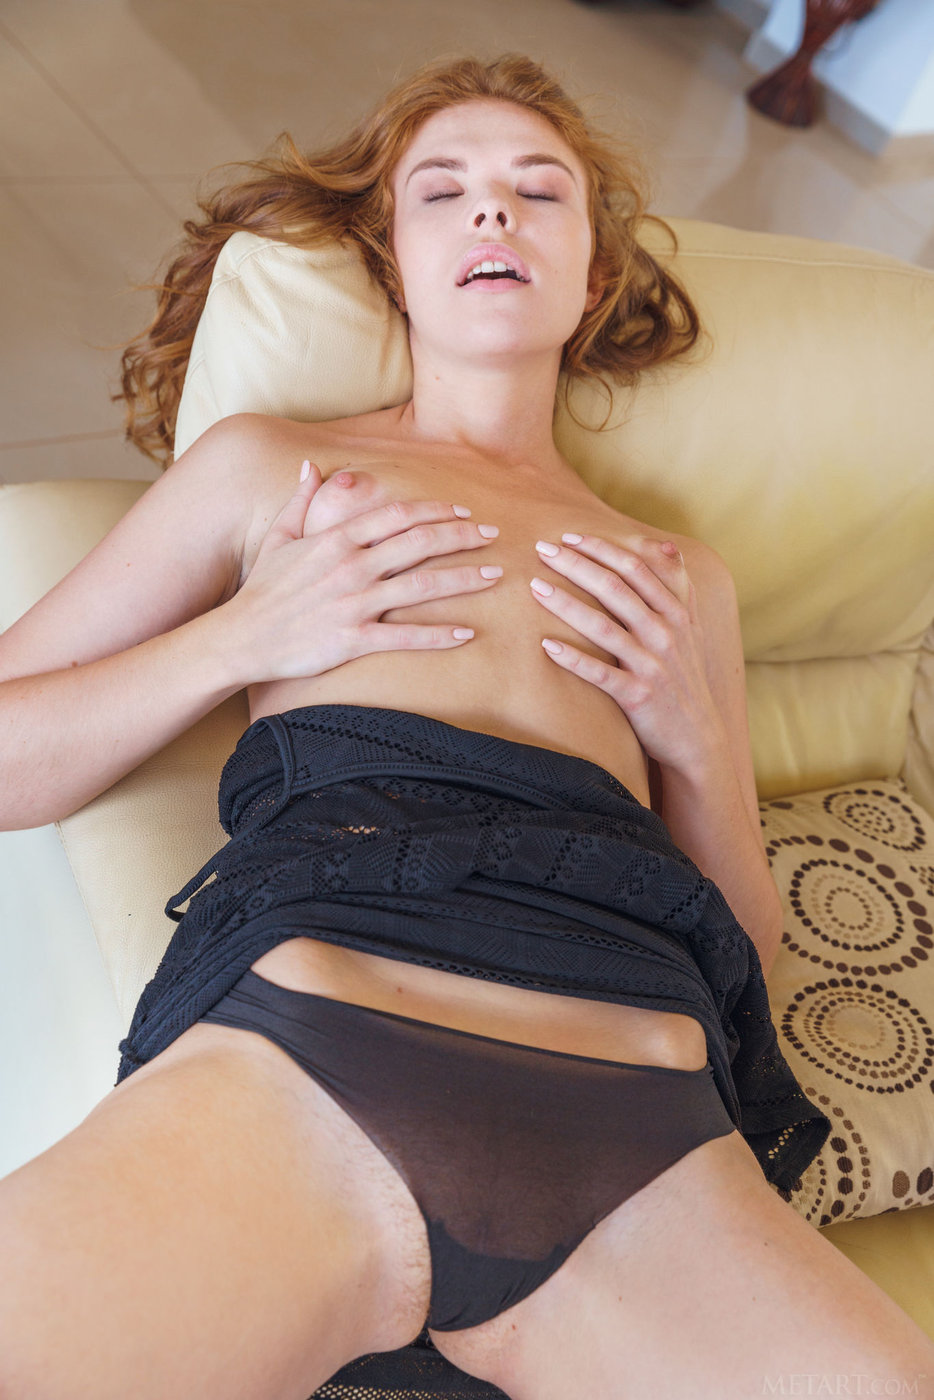 Redhead Teen In Tiny Panties Revealing Her Bushy Pussy Up -3828